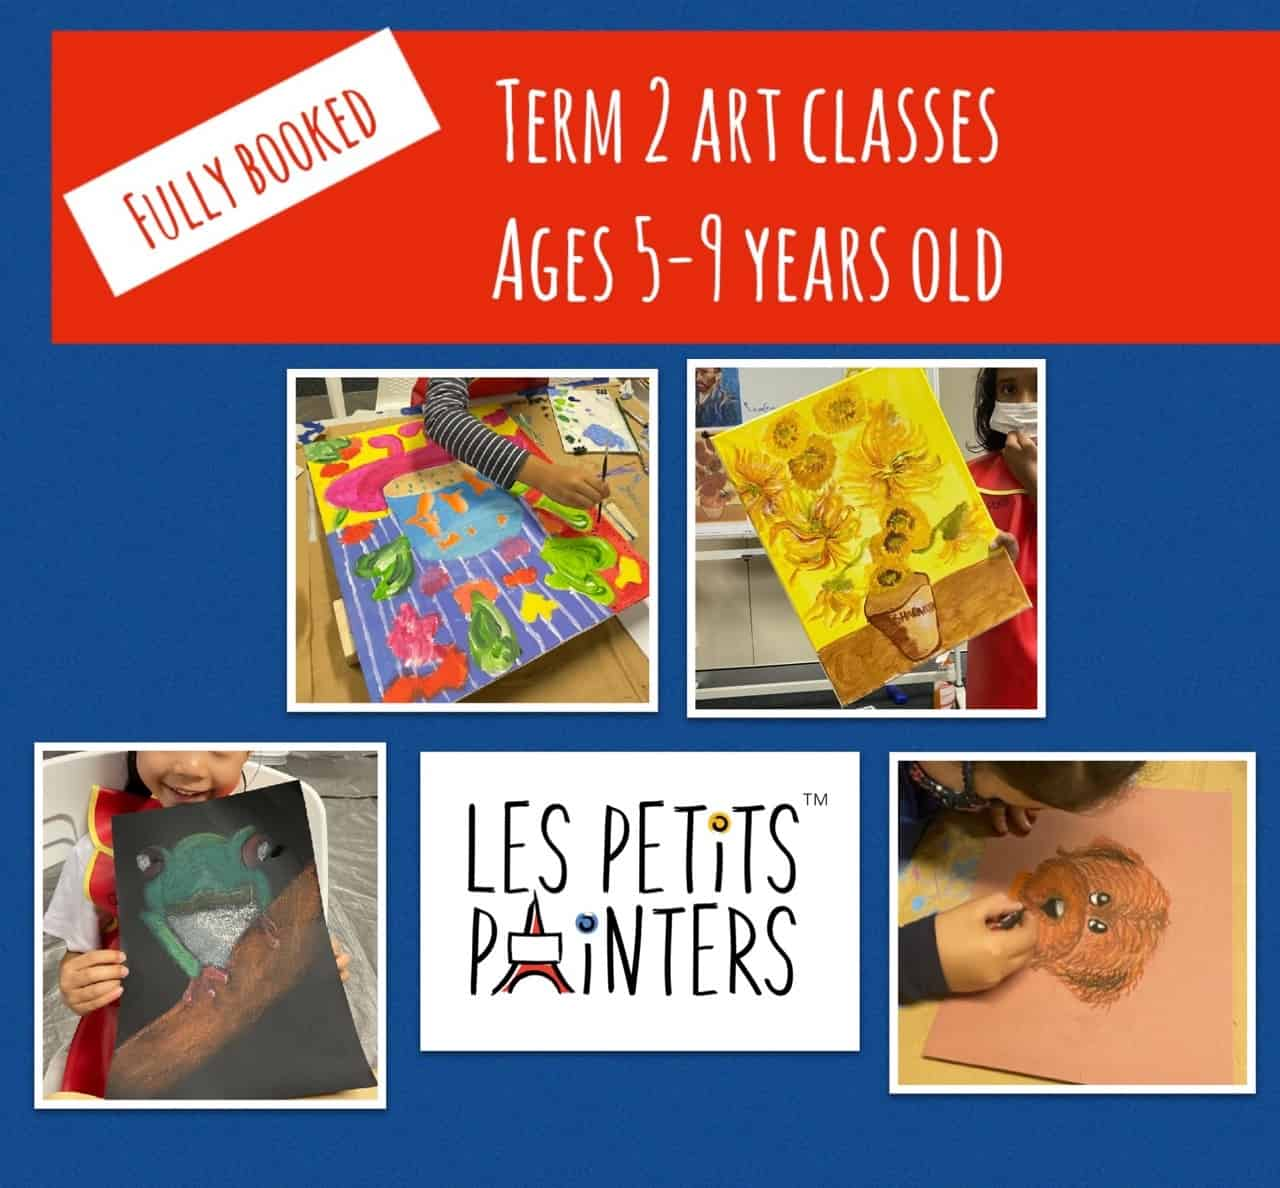 Art classes for children in Sydney, Les Petits Painters arts & crafts lessons for kids 5-9 years old